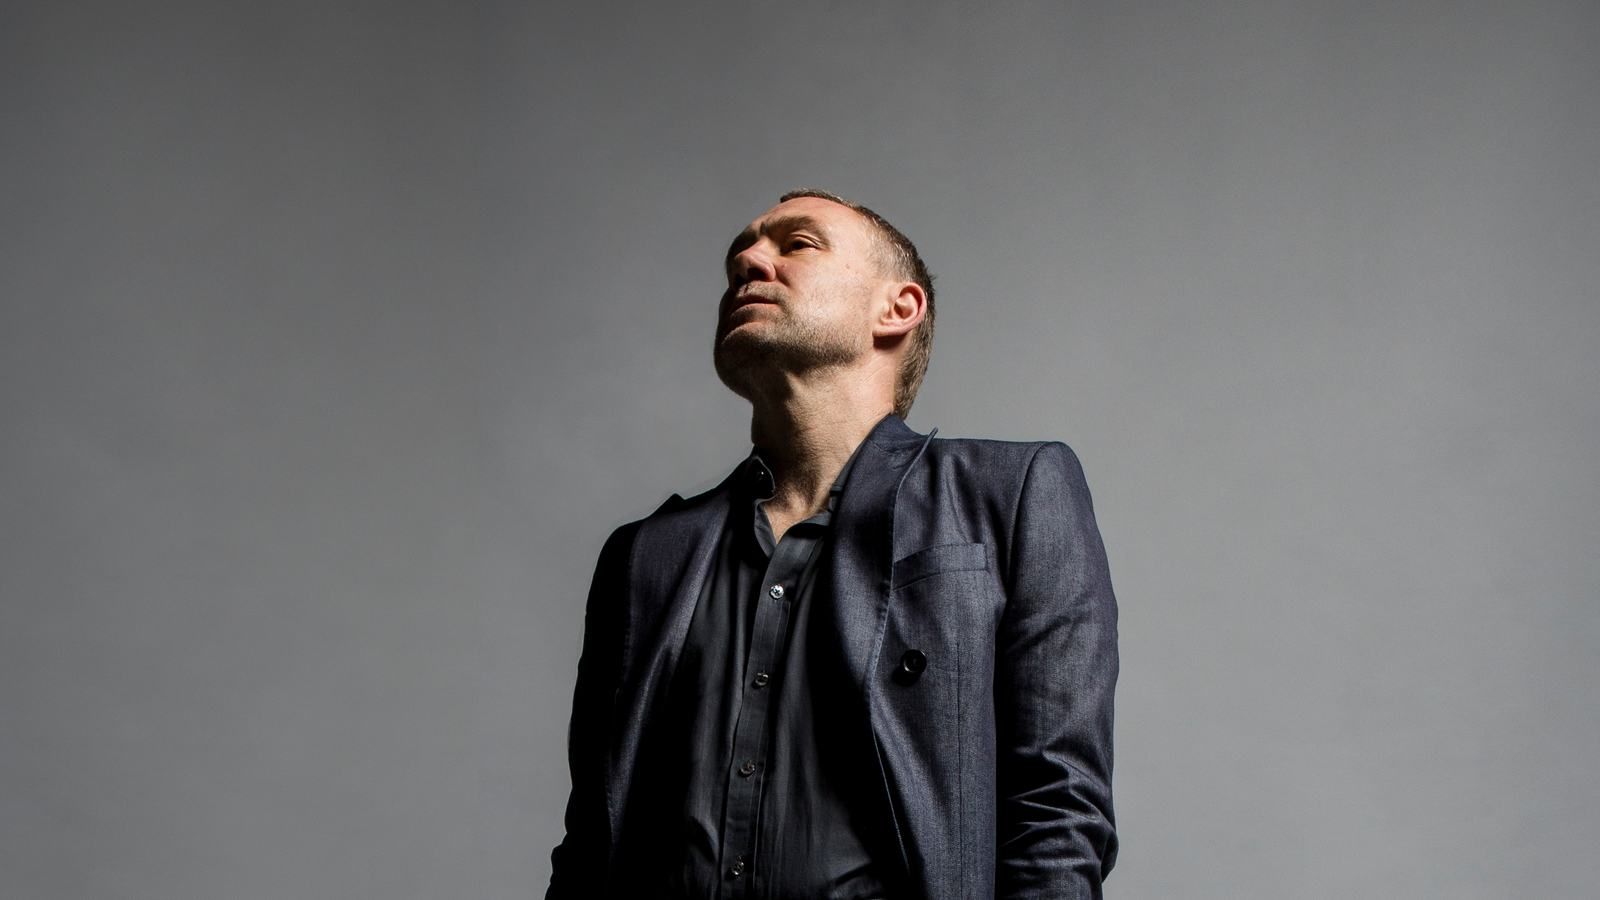 David Gray, singer-songwriter